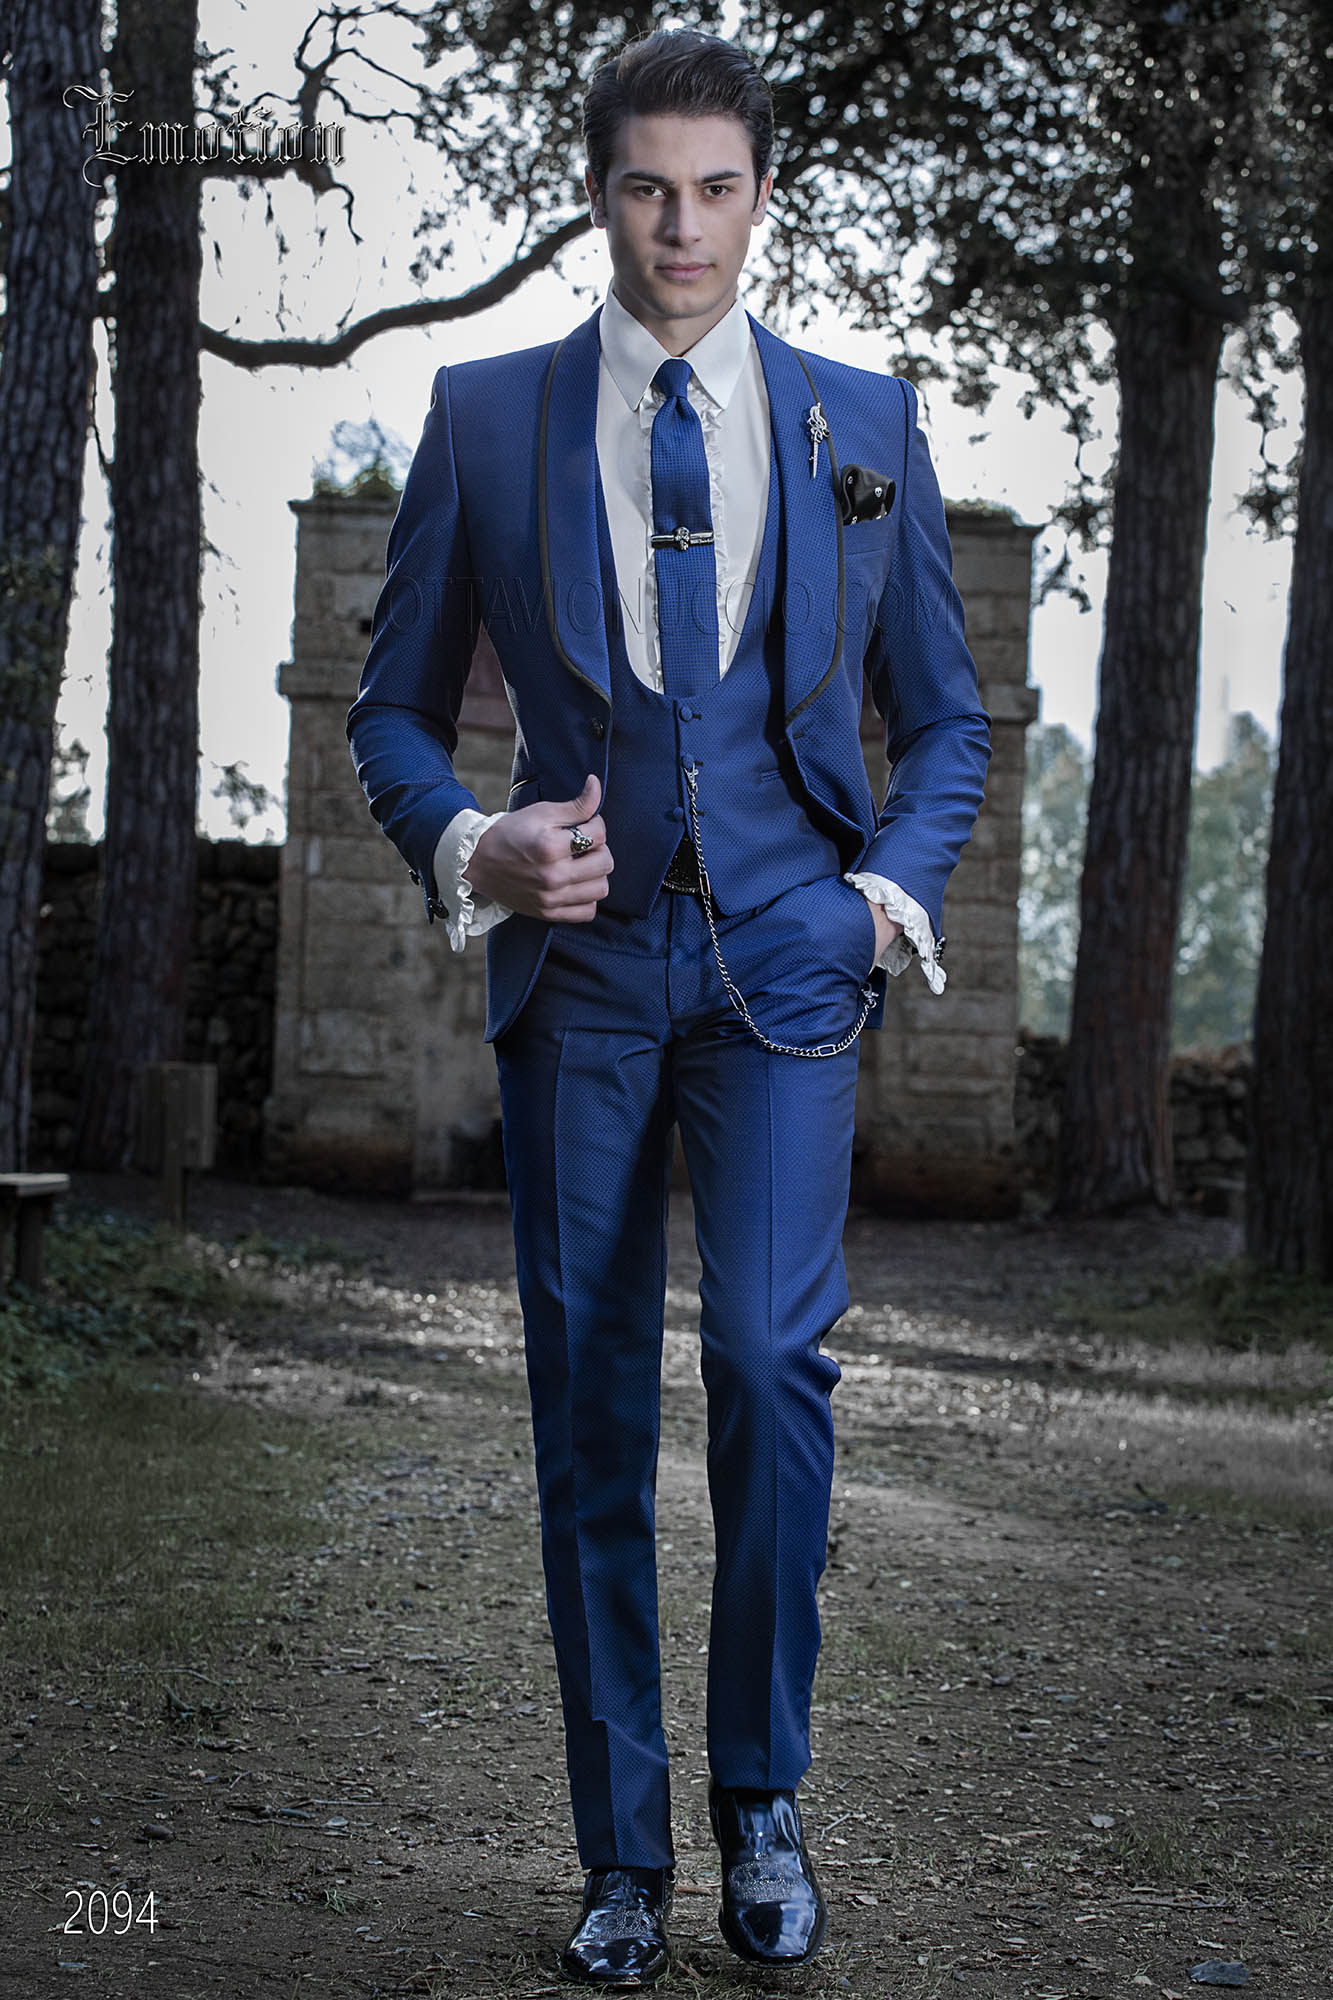 Italian wedding suit for men in royal blue with shawl collar